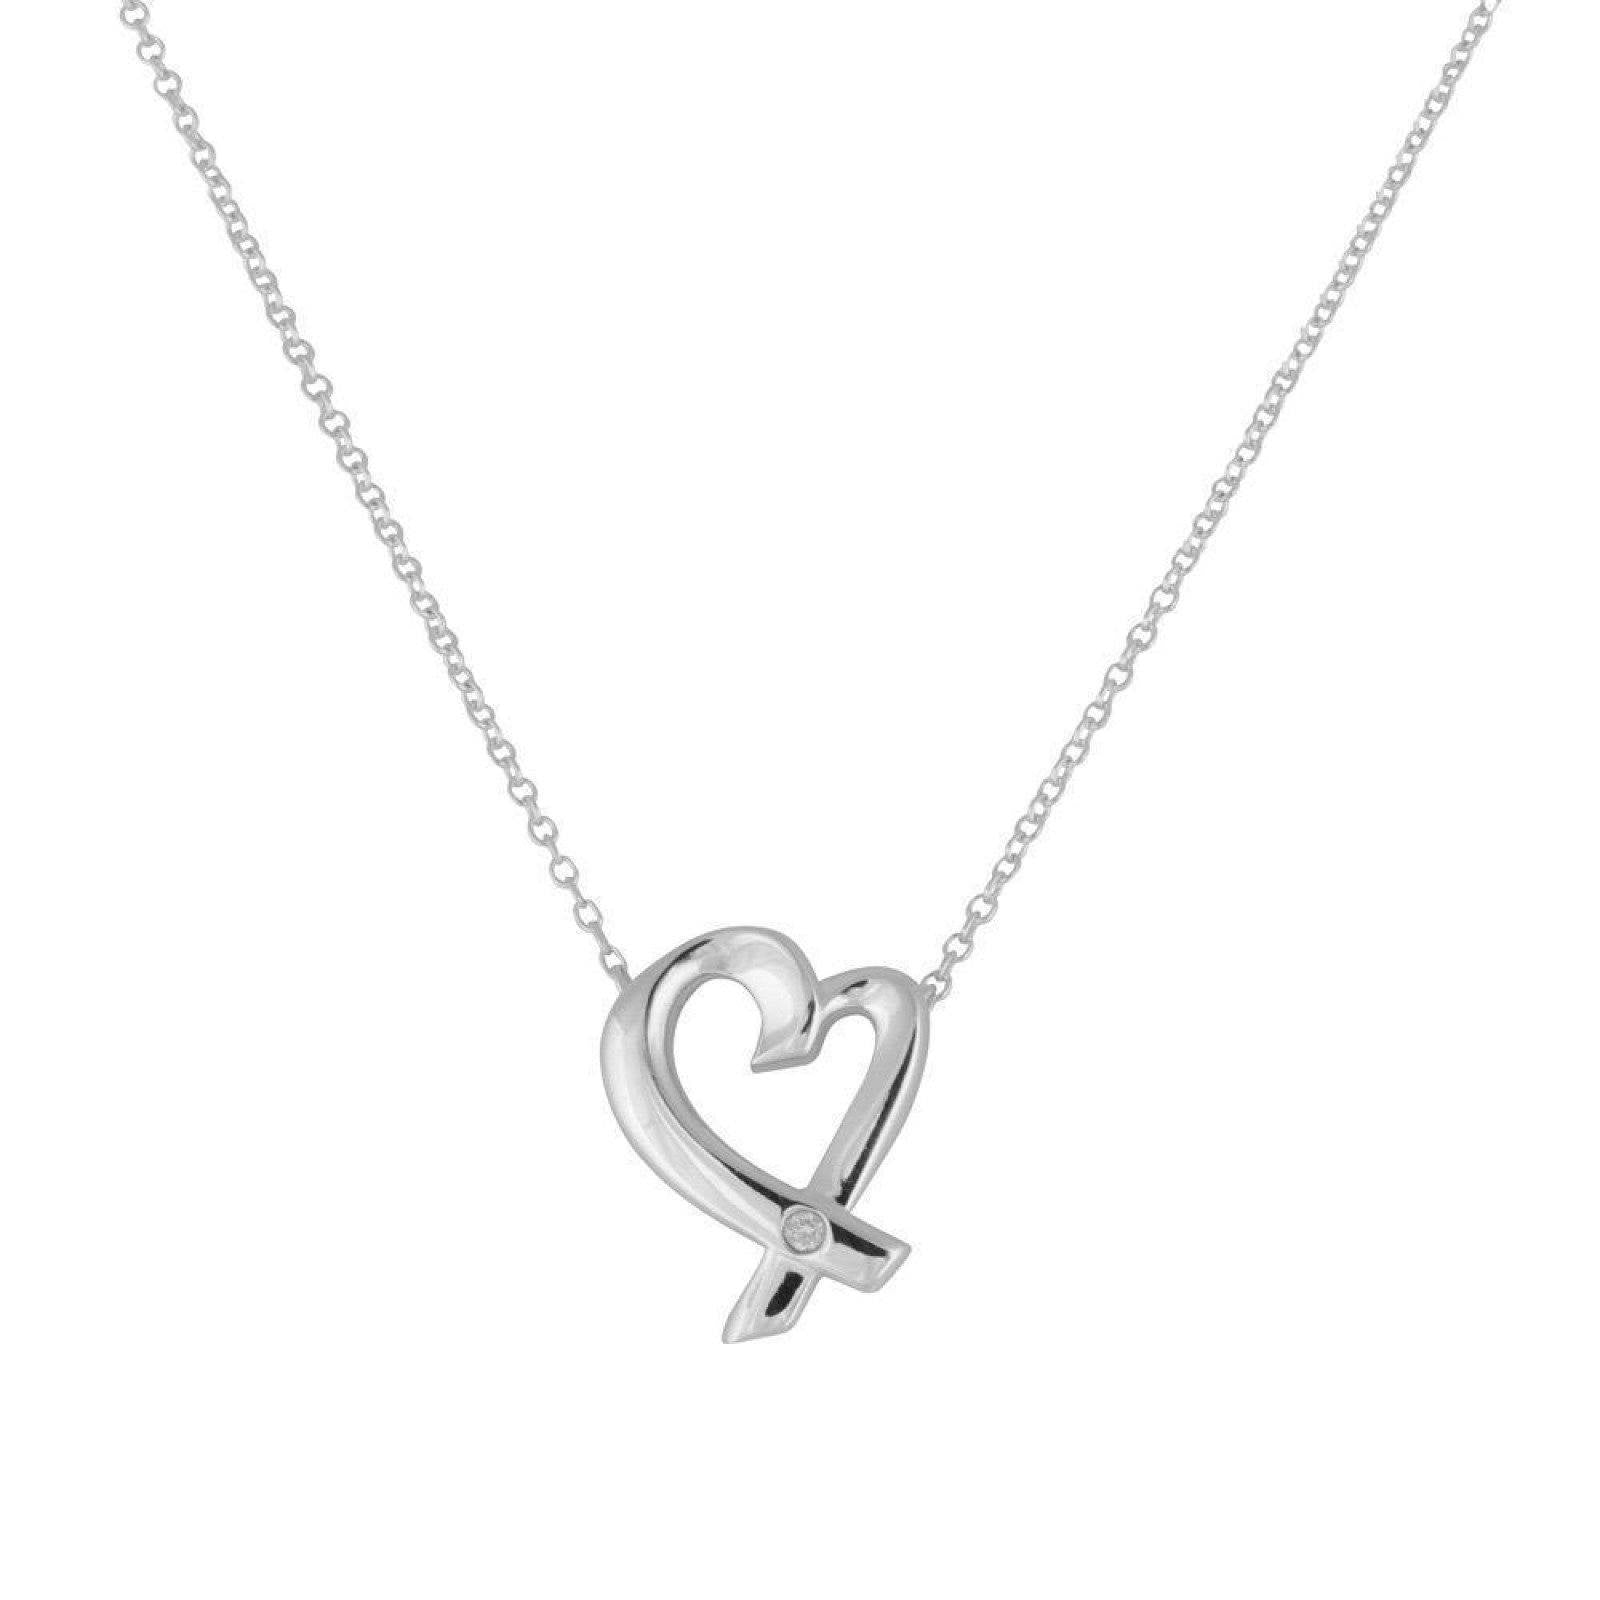 08b4821864b6b Tiffany & Co. Paloma Picasso Loving Heart Pendant Necklace in Sterling  Silver